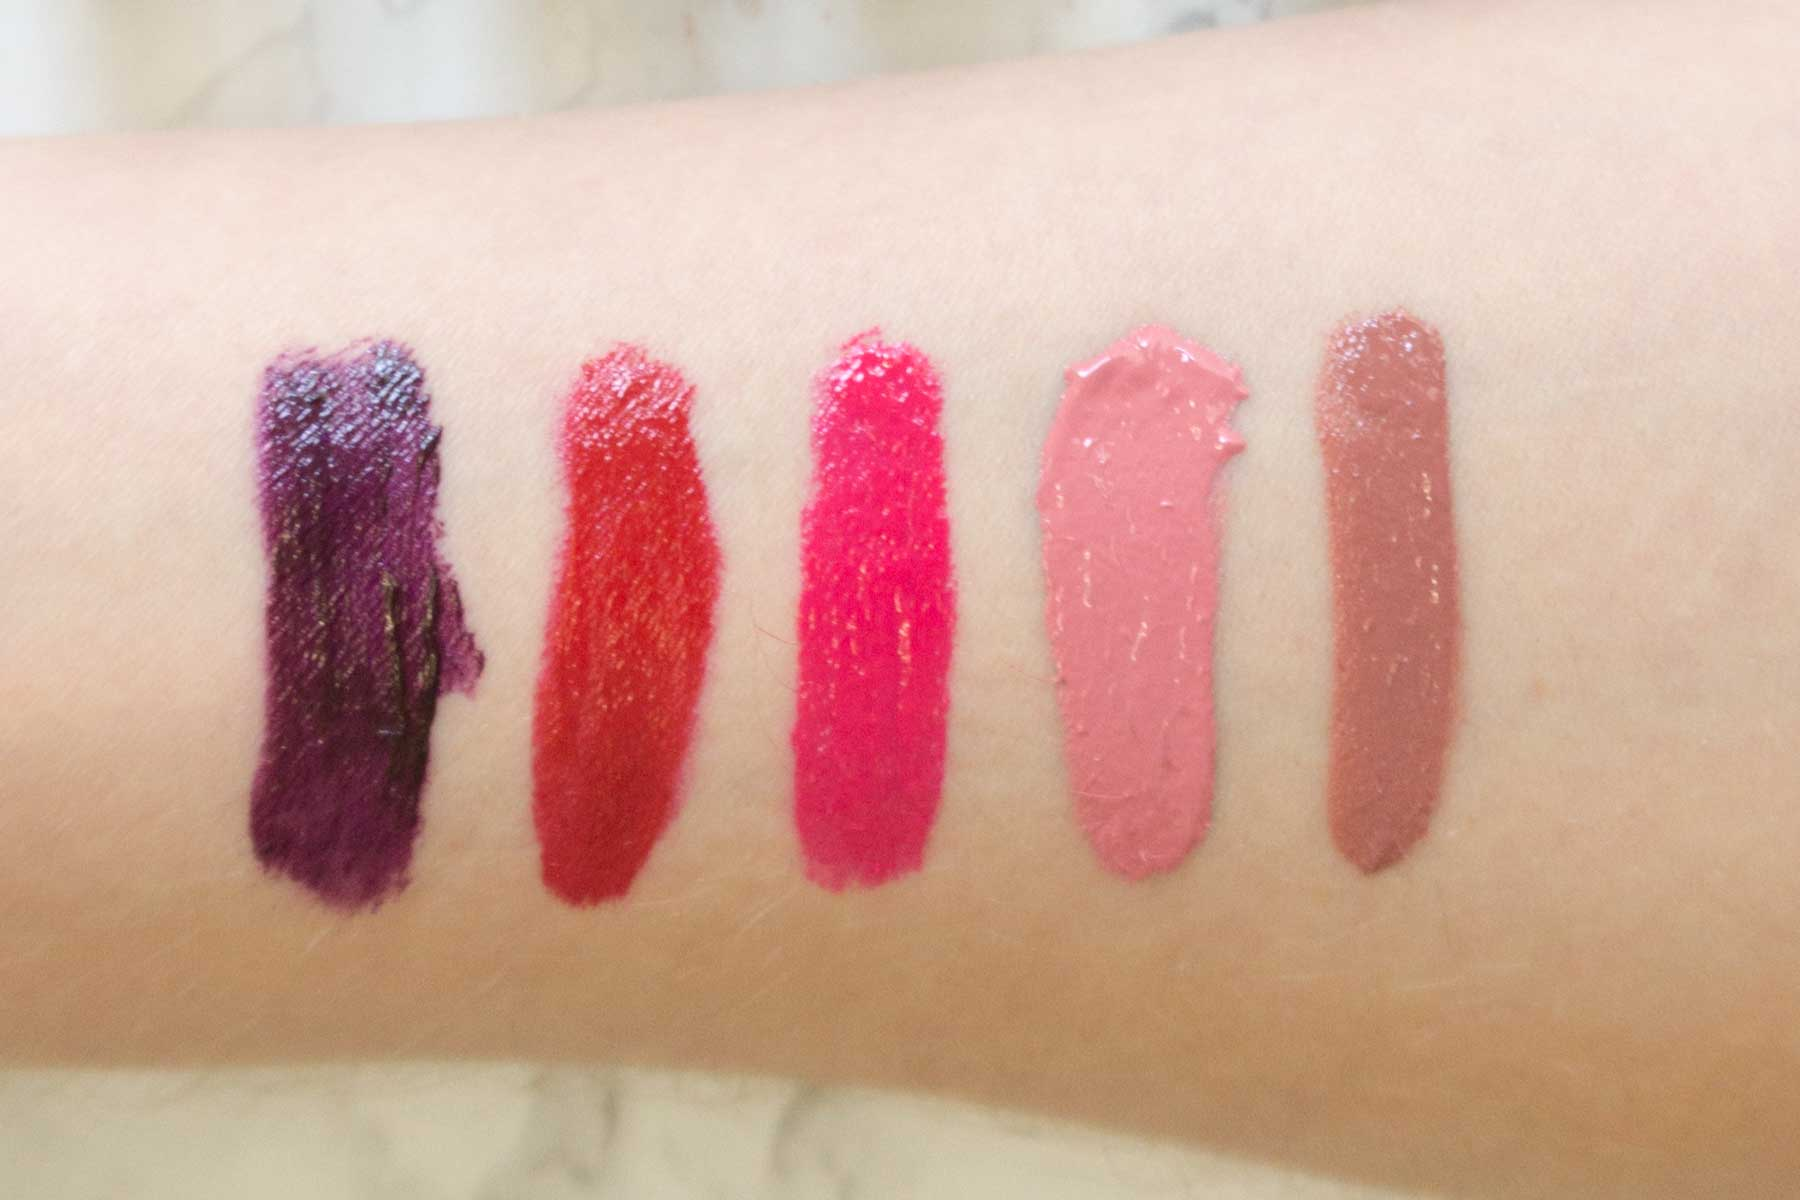 maybelline color drama swatches